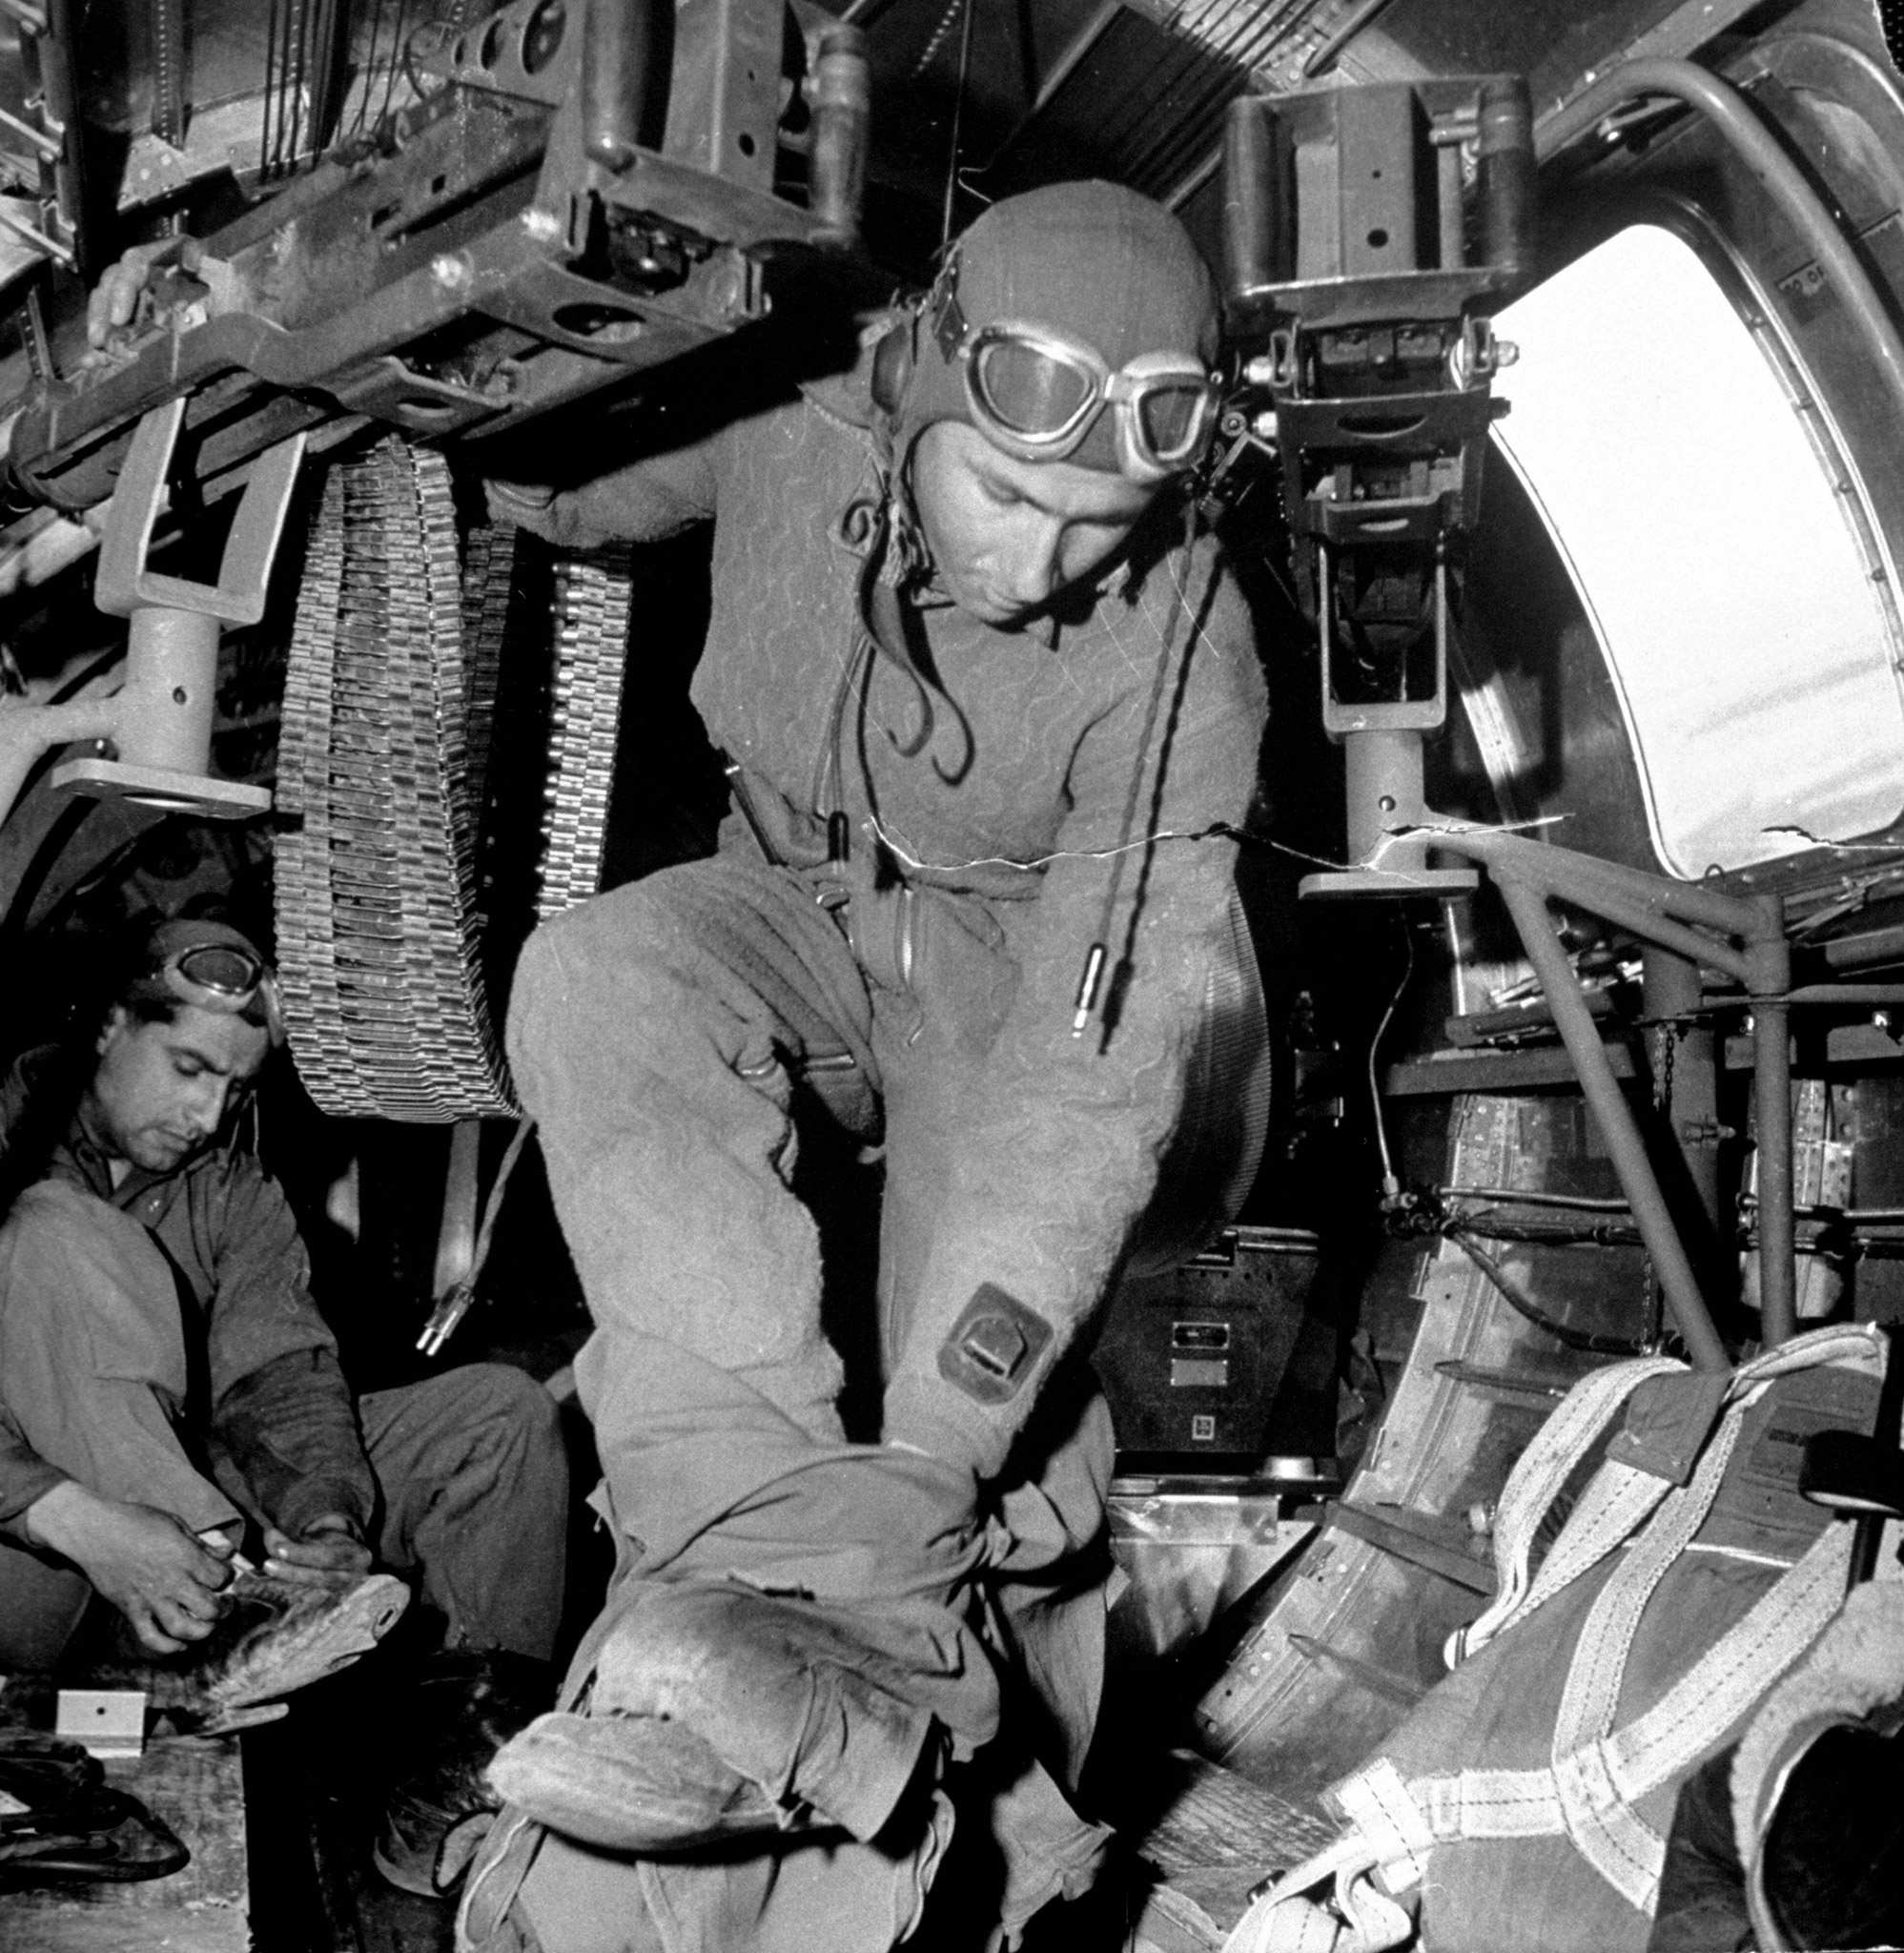 """Ball turret gunner Sgt. James M. Abbott, holding onto one of the 50-cal. waist machine guns as he takes off his warm high altitude clothing upon return from a successful bombing mission in the Amer. B-17 """"Little Bill"""", at Sahara desert airdrome."""